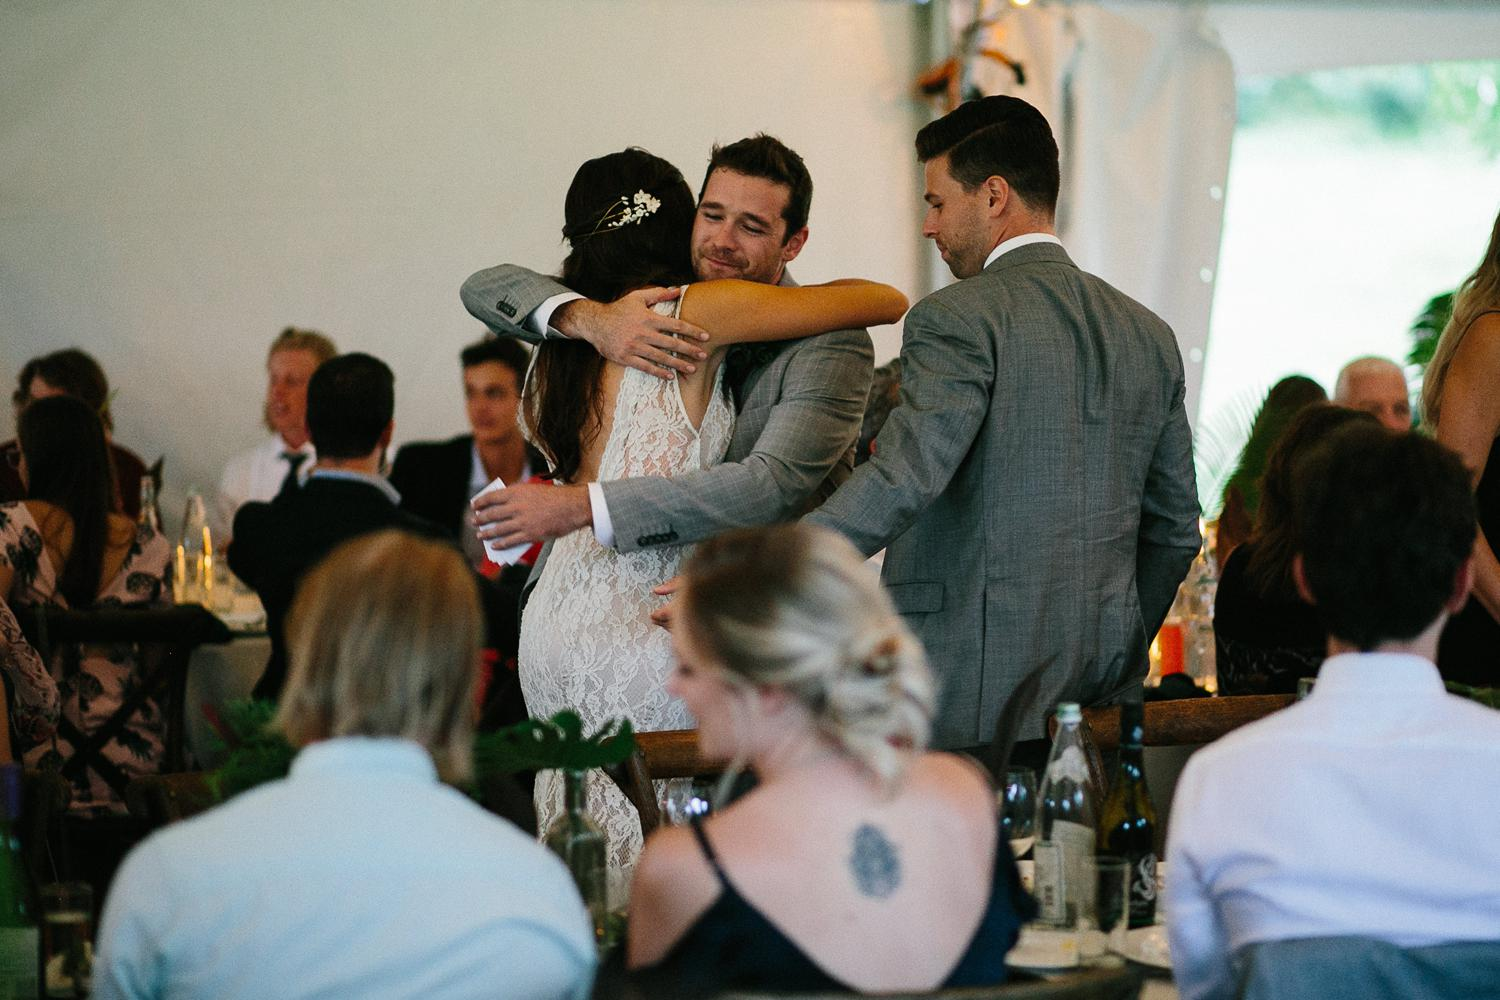 Bailey___Joseph_Wedding_528.jpg